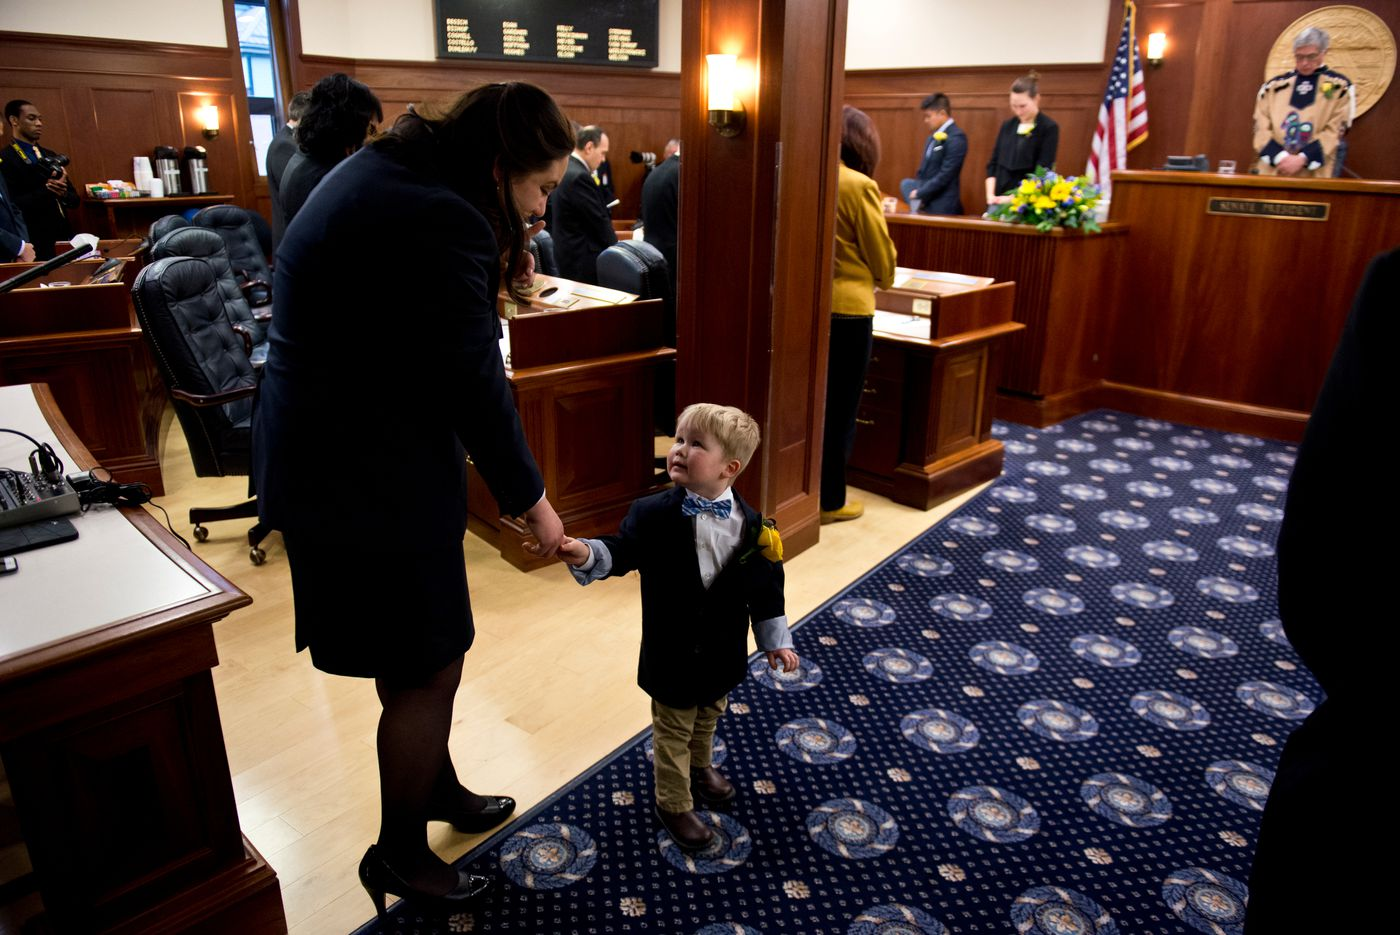 Mason Fairclough, 2, grandson of Sen. Anna MacKinnon, holds hands with a Senate page during an invocation.